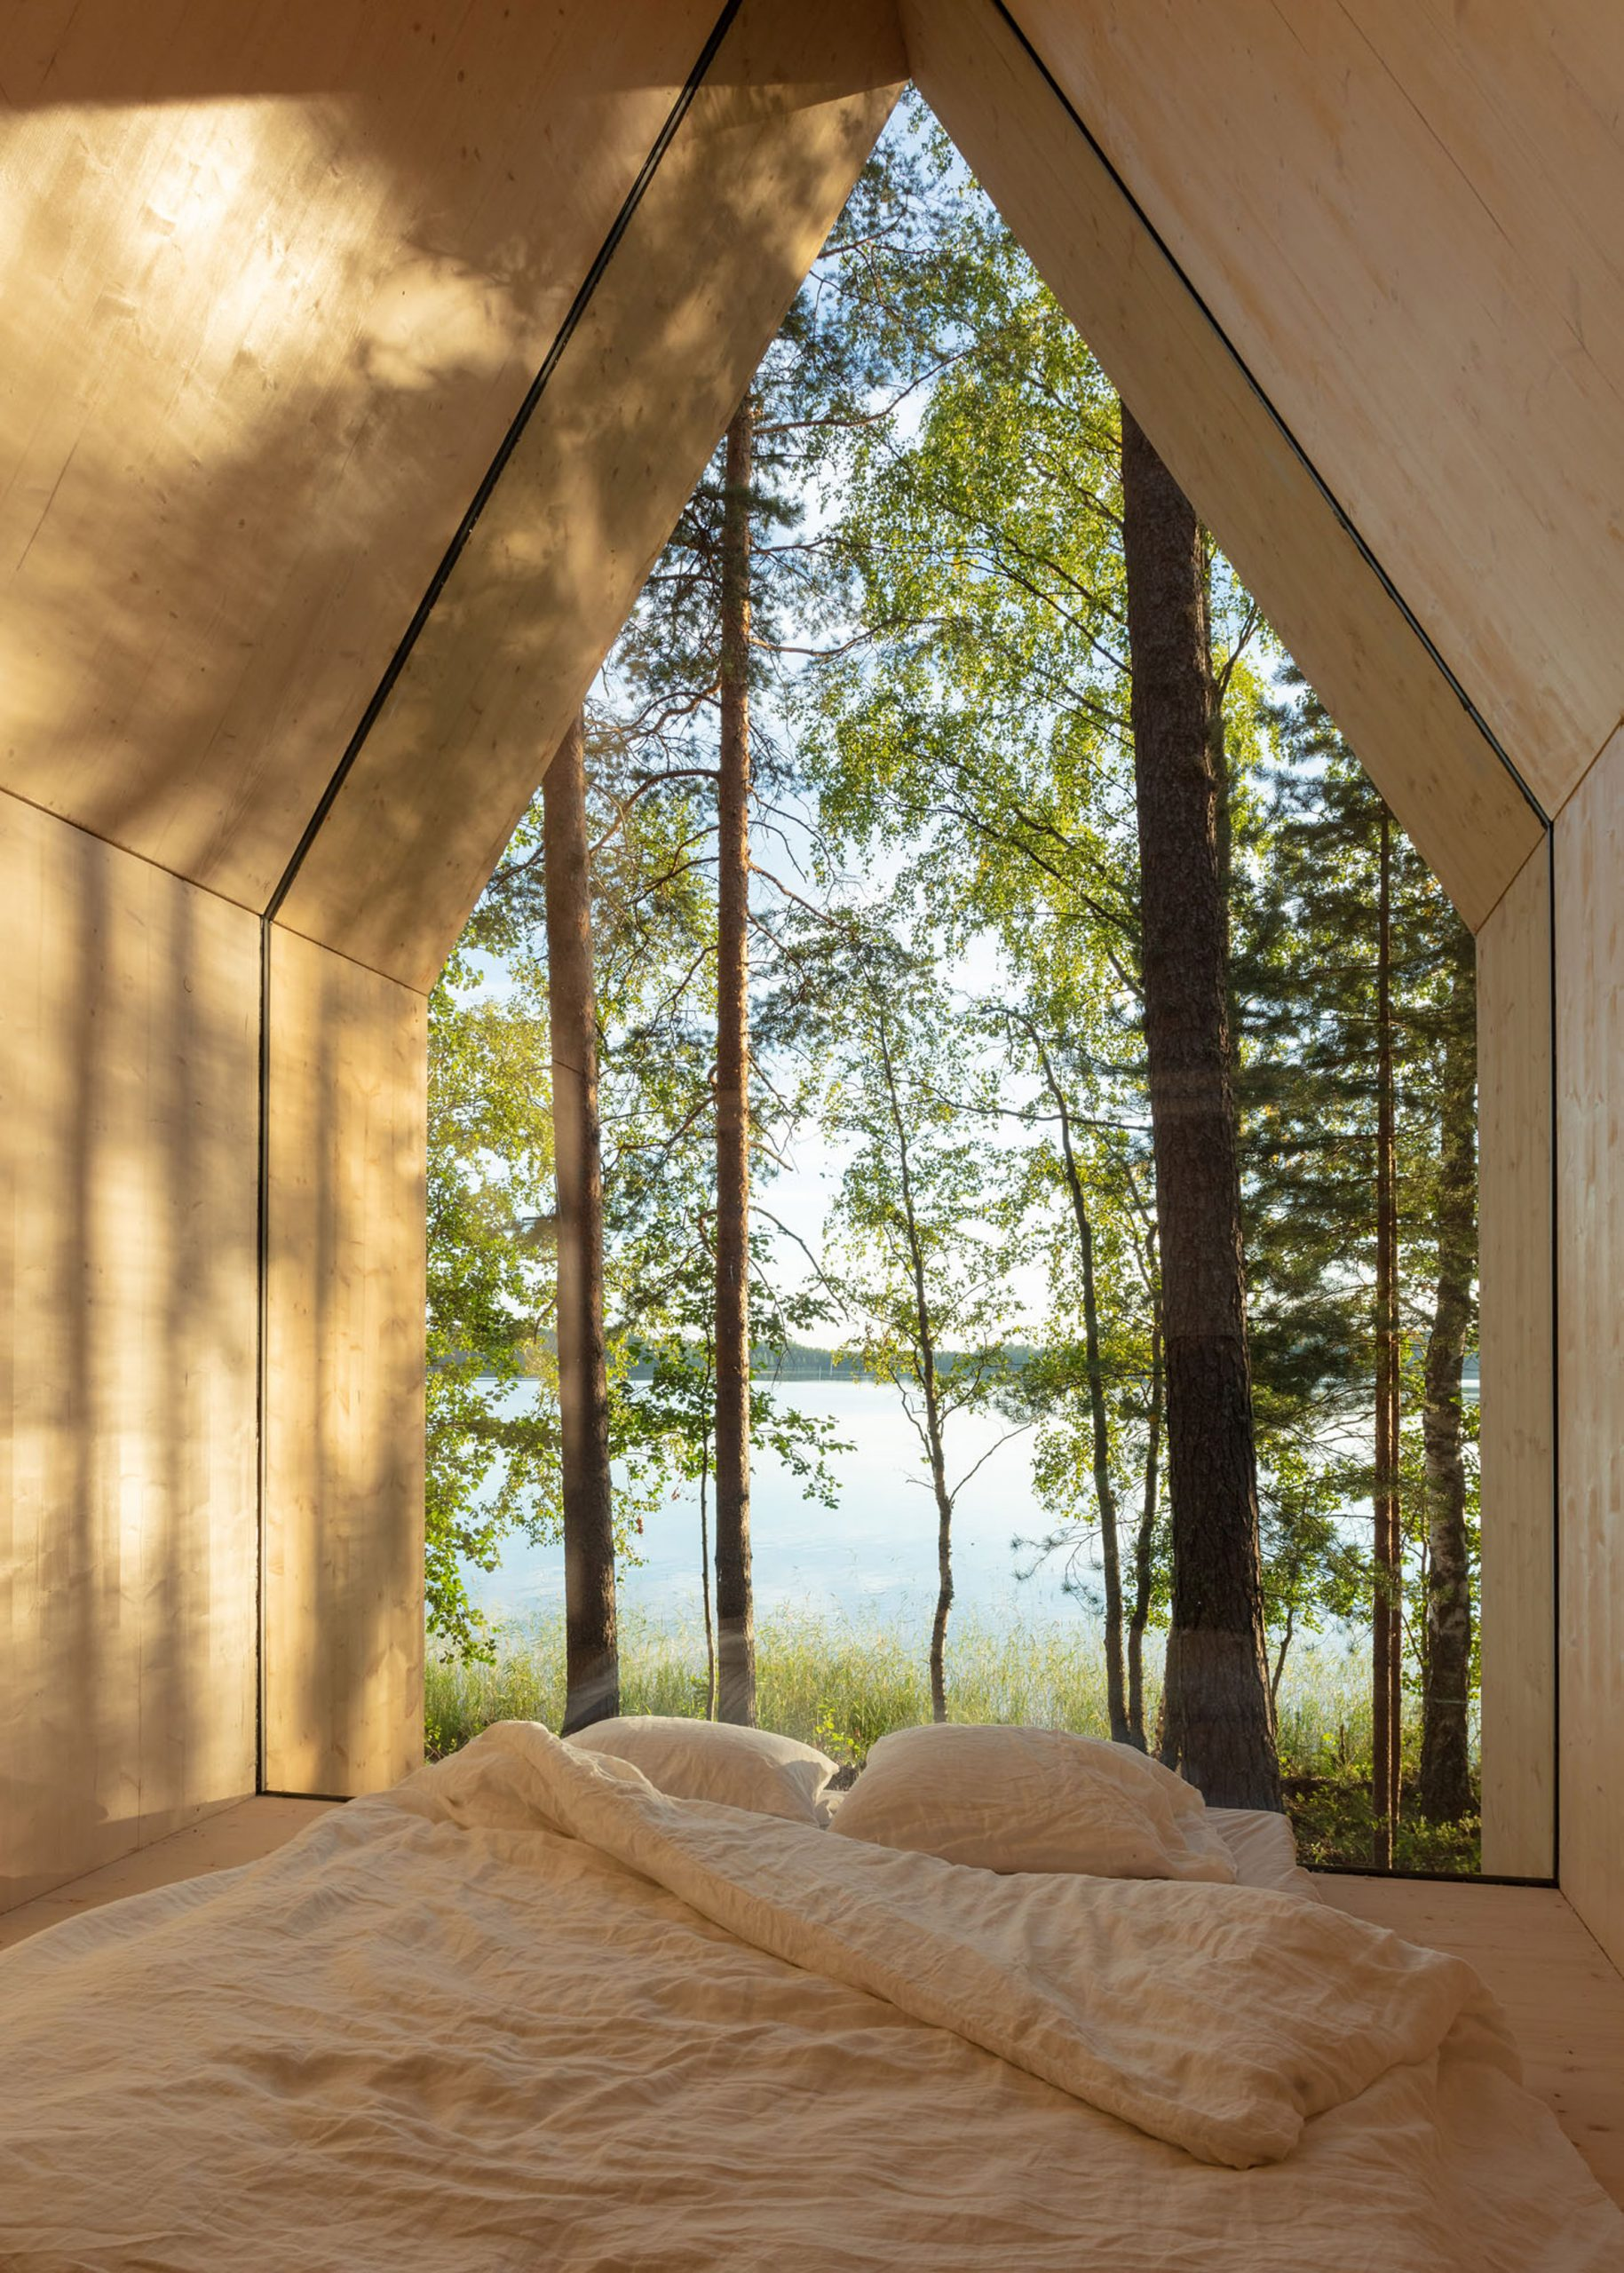 Bed of Kynttilä cabin by Ortraum Architects